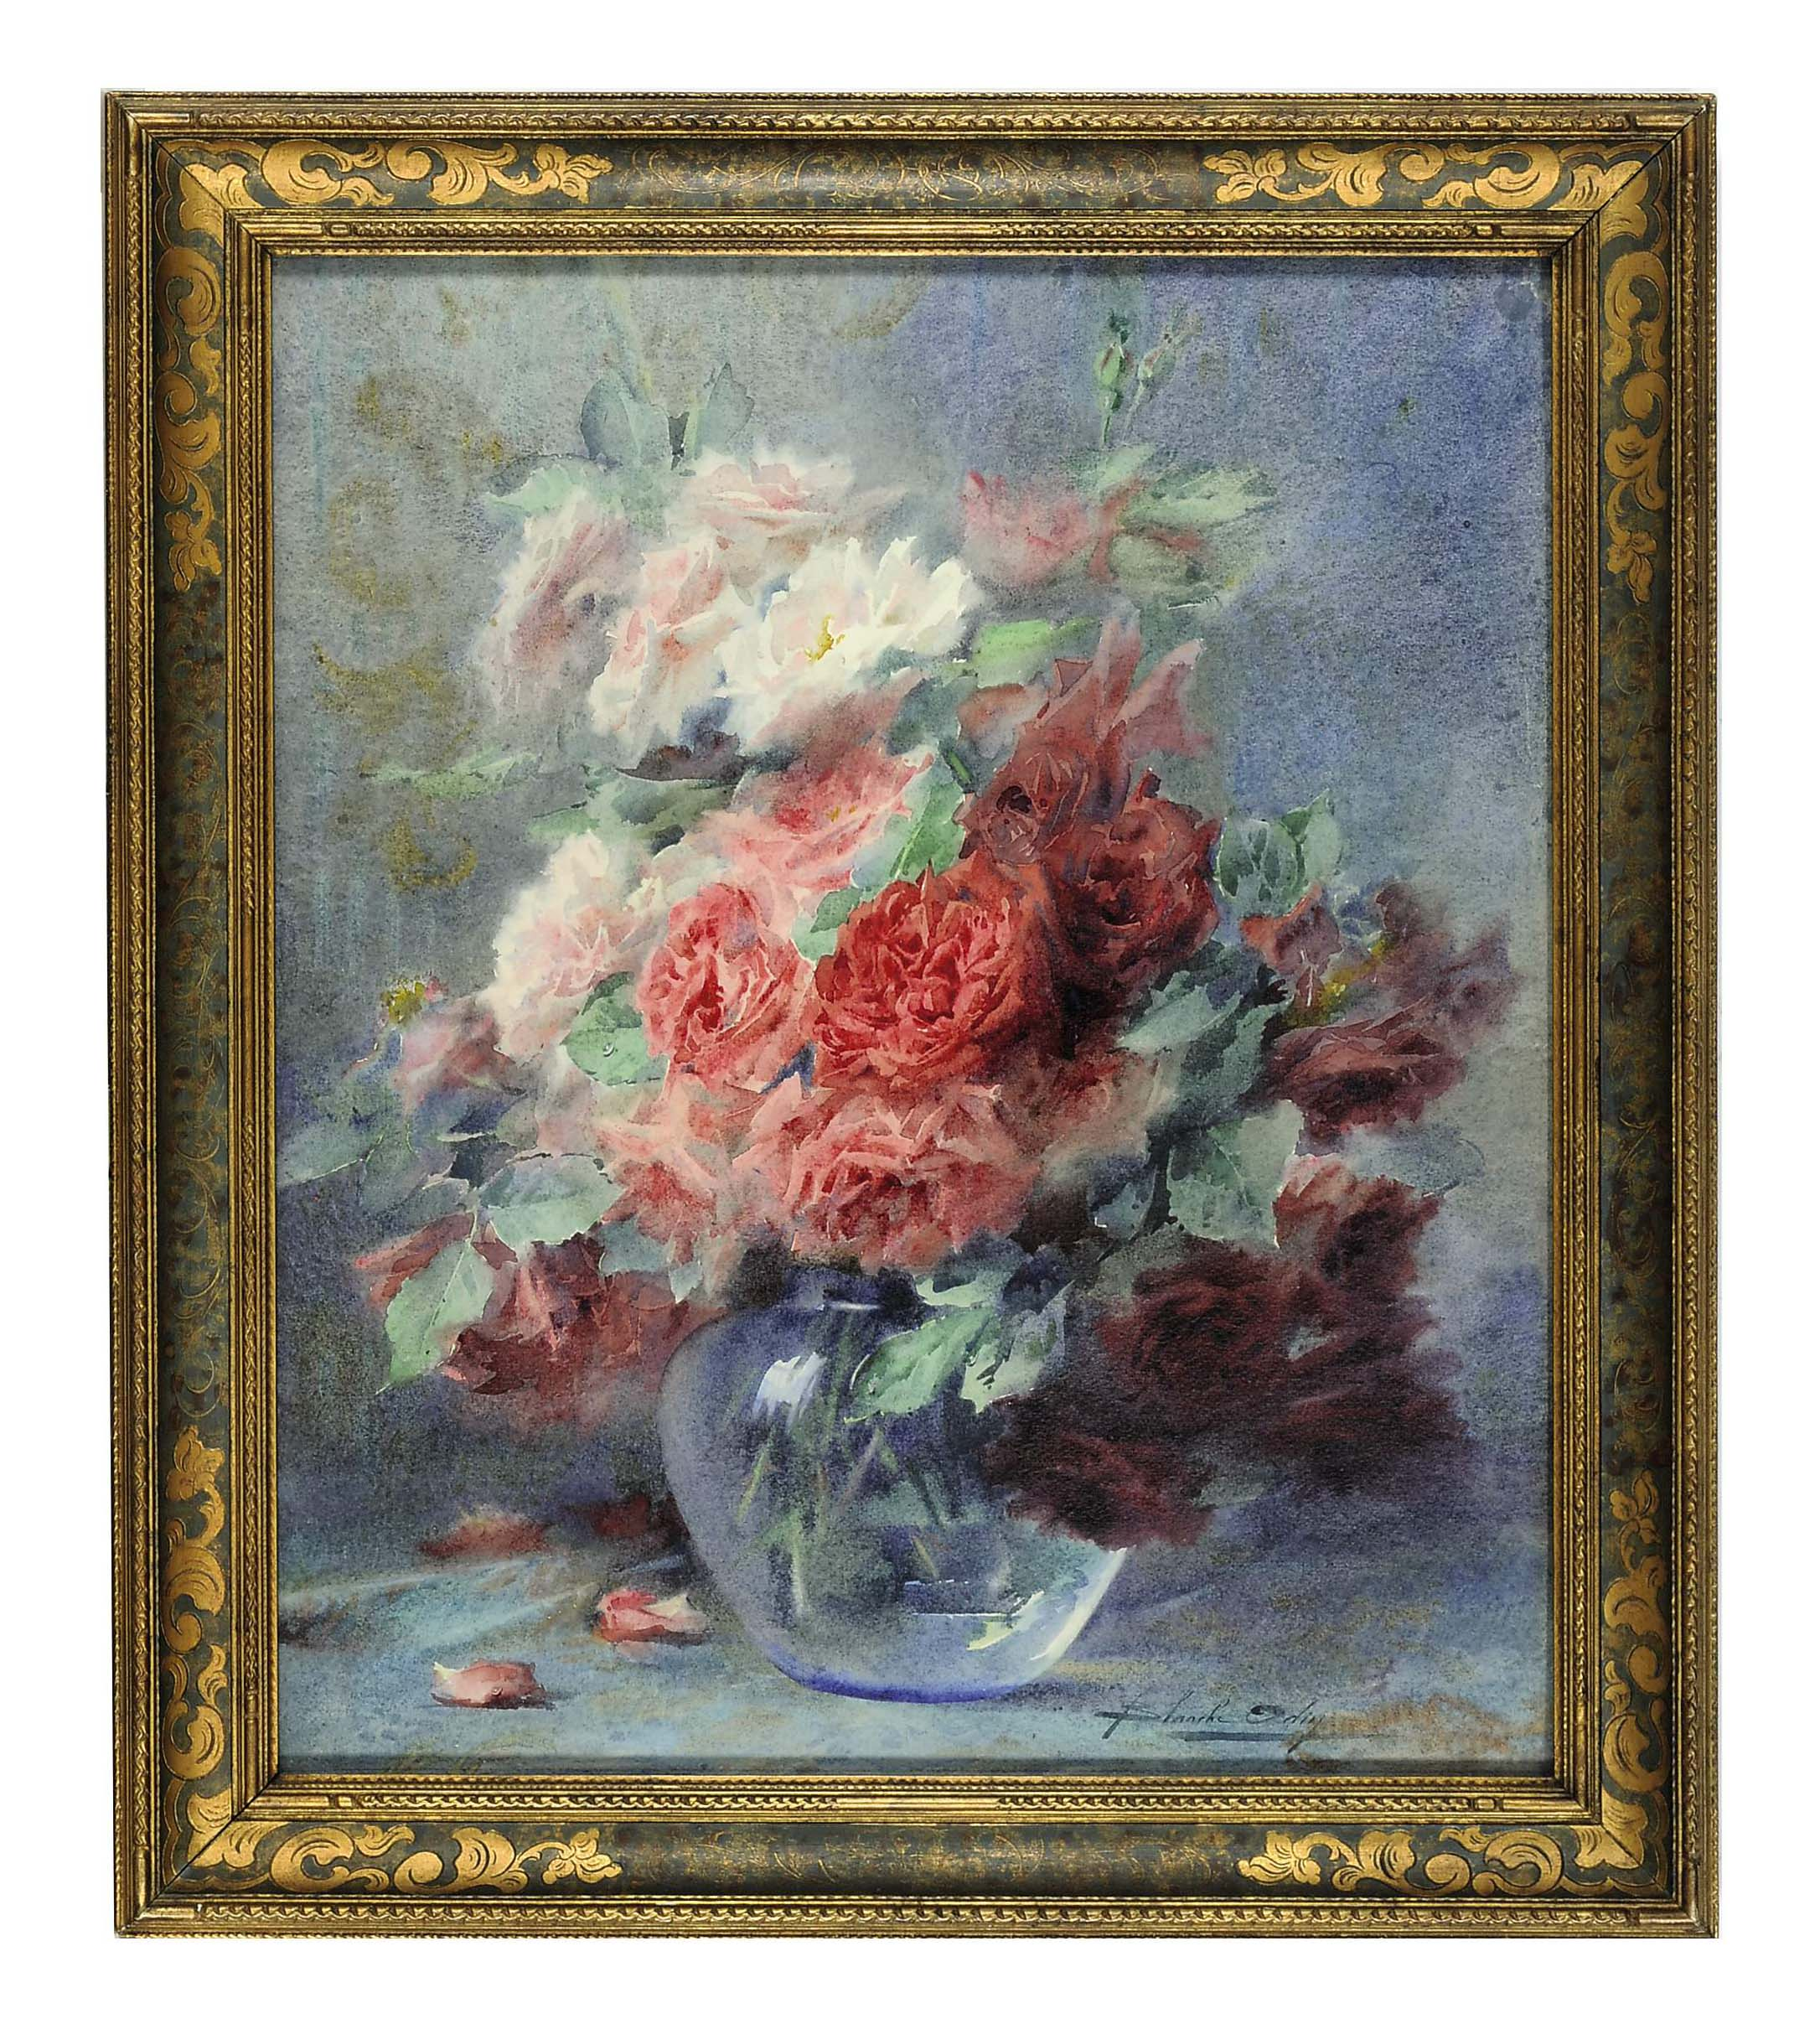 Still life of roses in a vase